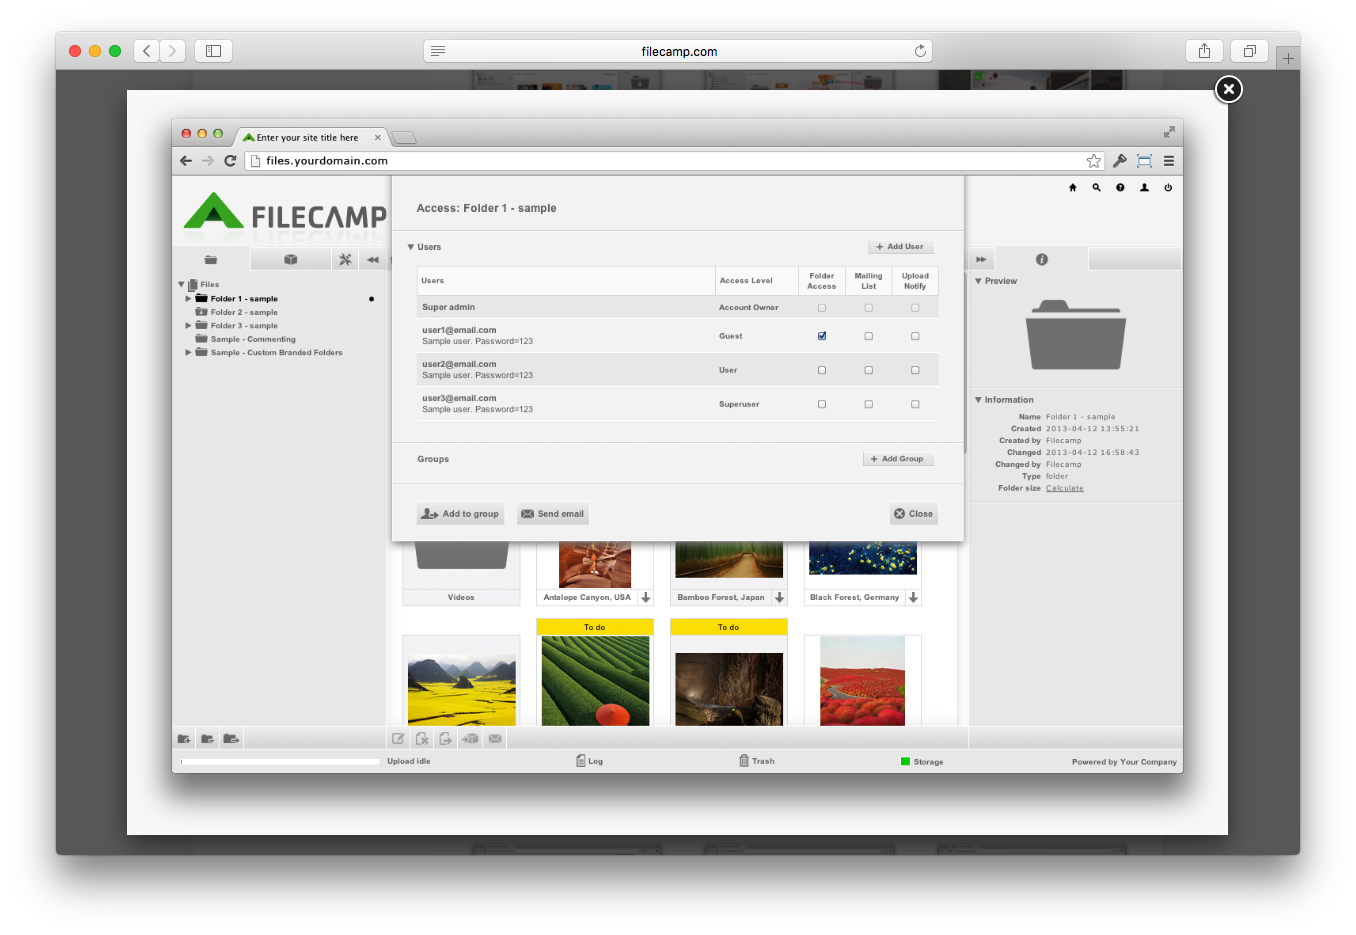 Filecamp user access permissions security download